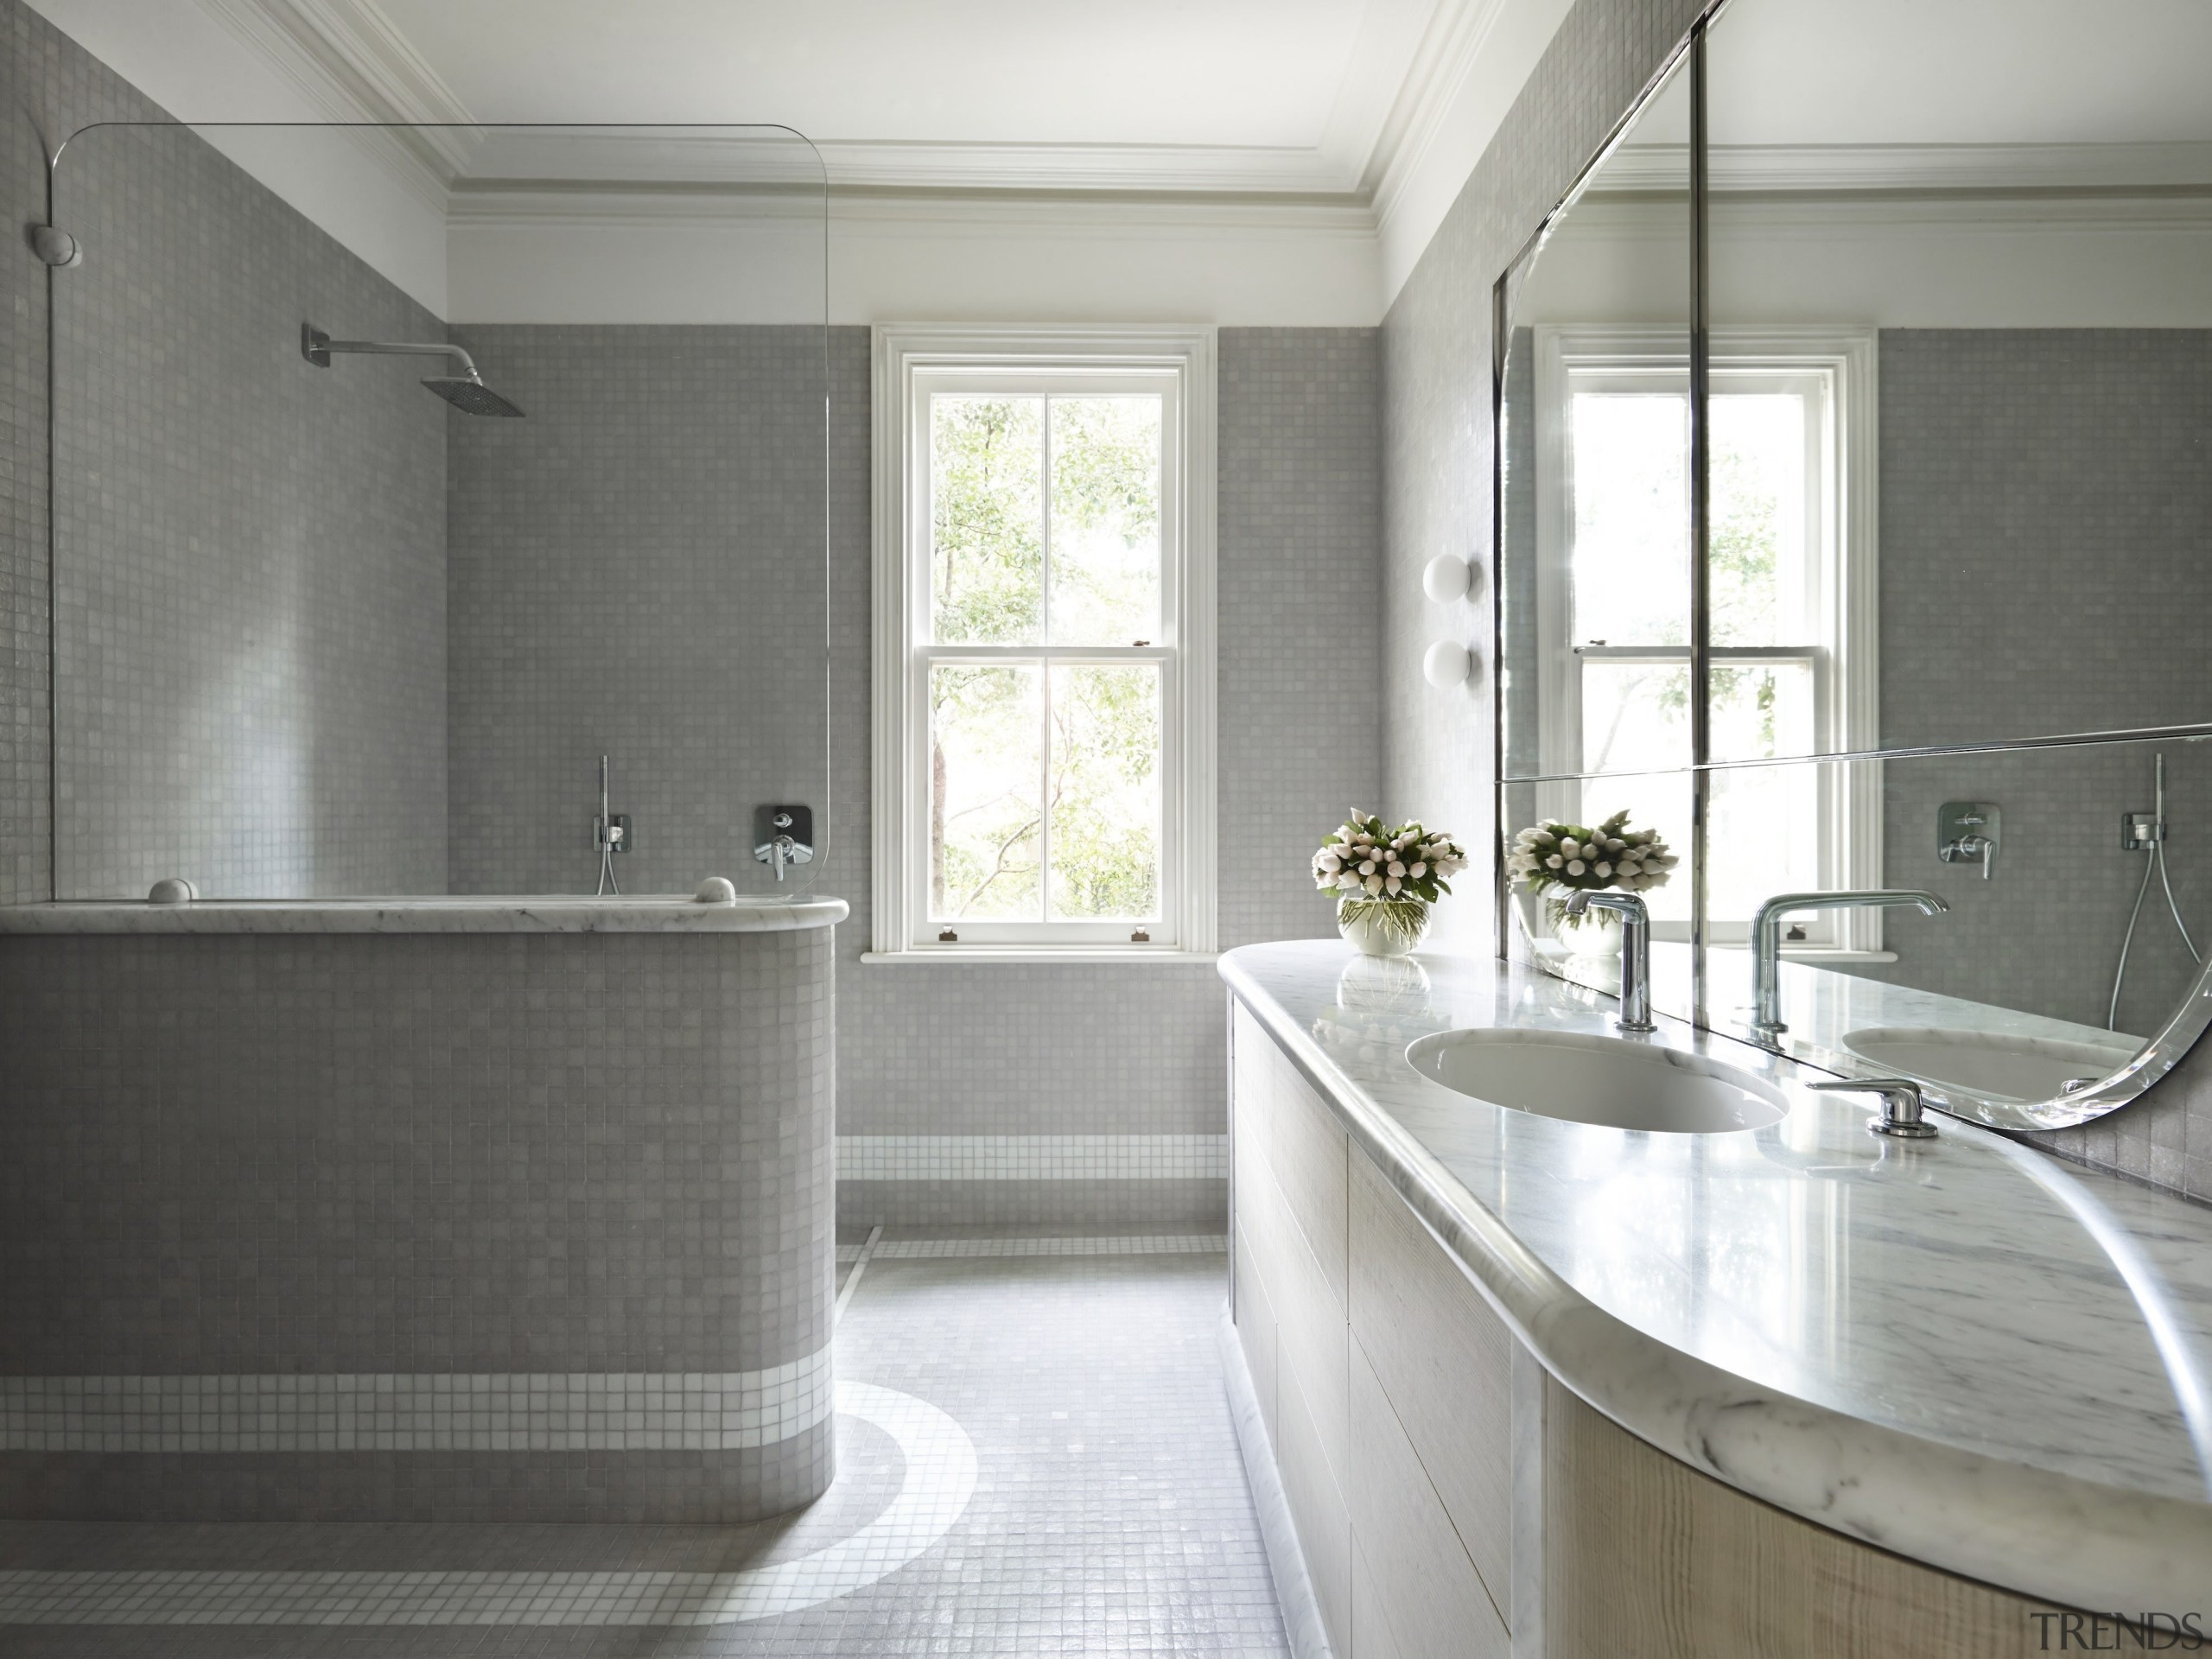 Winner Architect Designed Bathroom – Sjb Interiors bathroom, countertop, floor, home, interior design, real estate, room, sink, window, gray, white